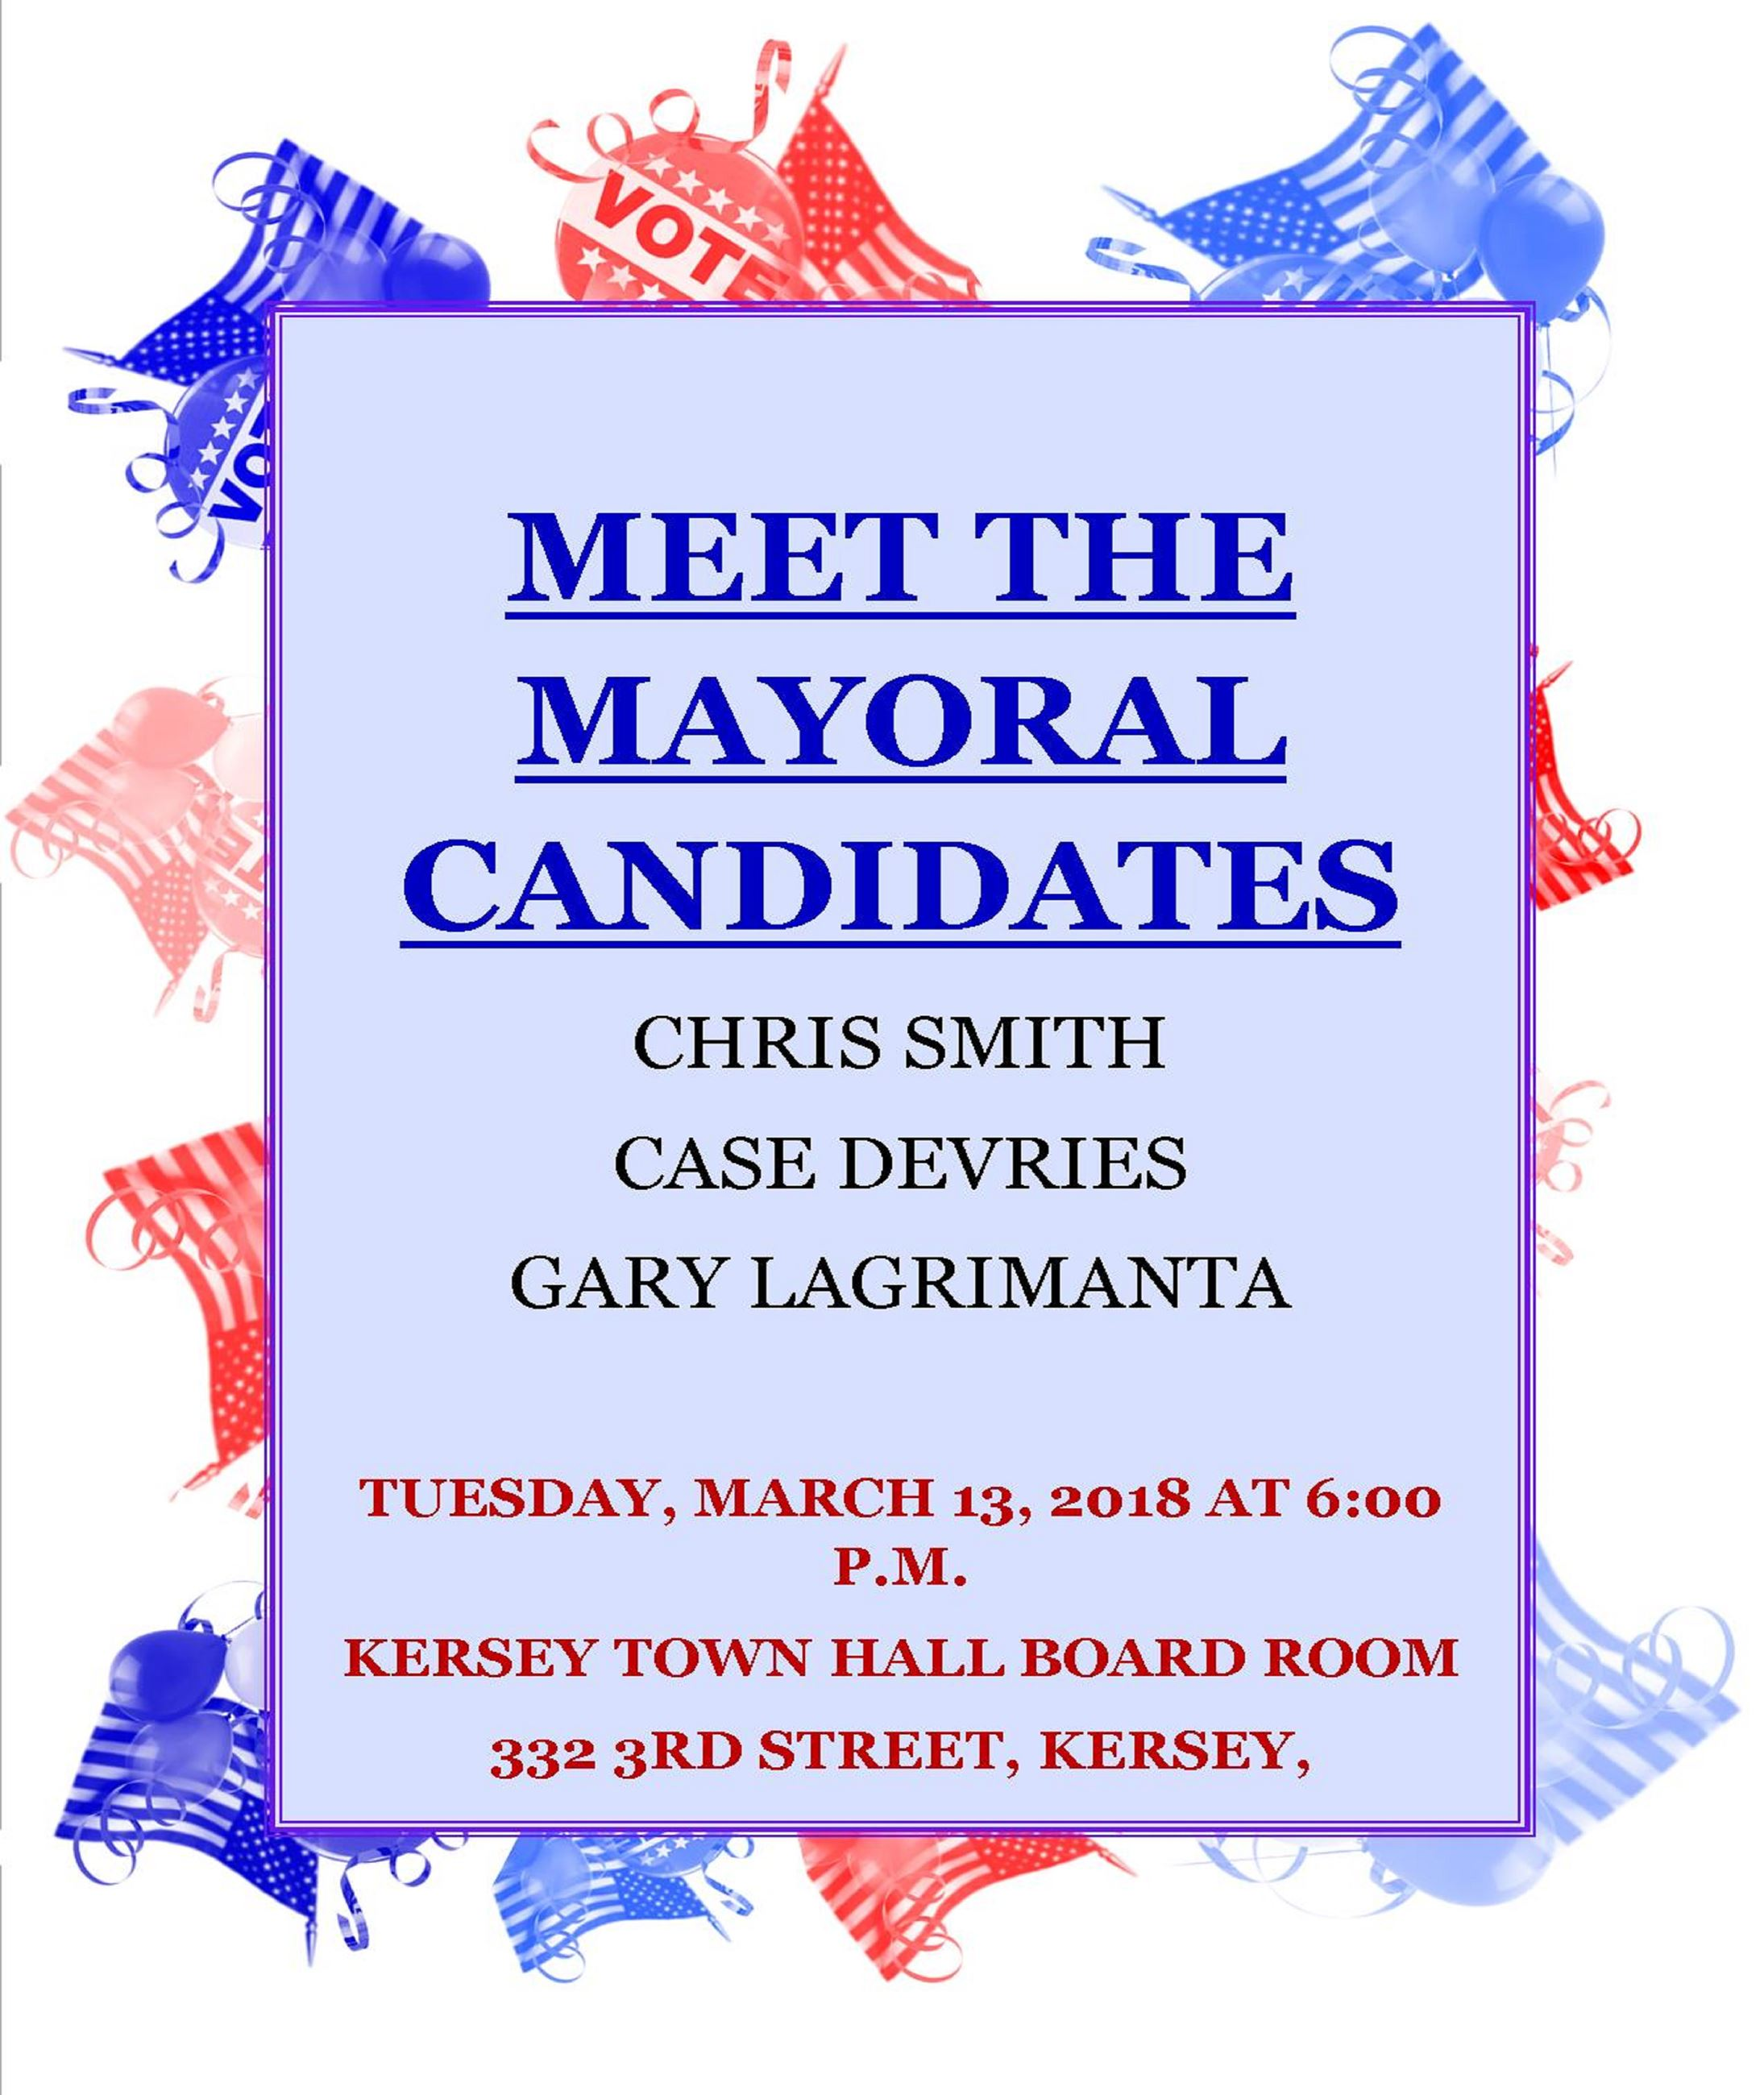 Meet the Mayoral Candidates